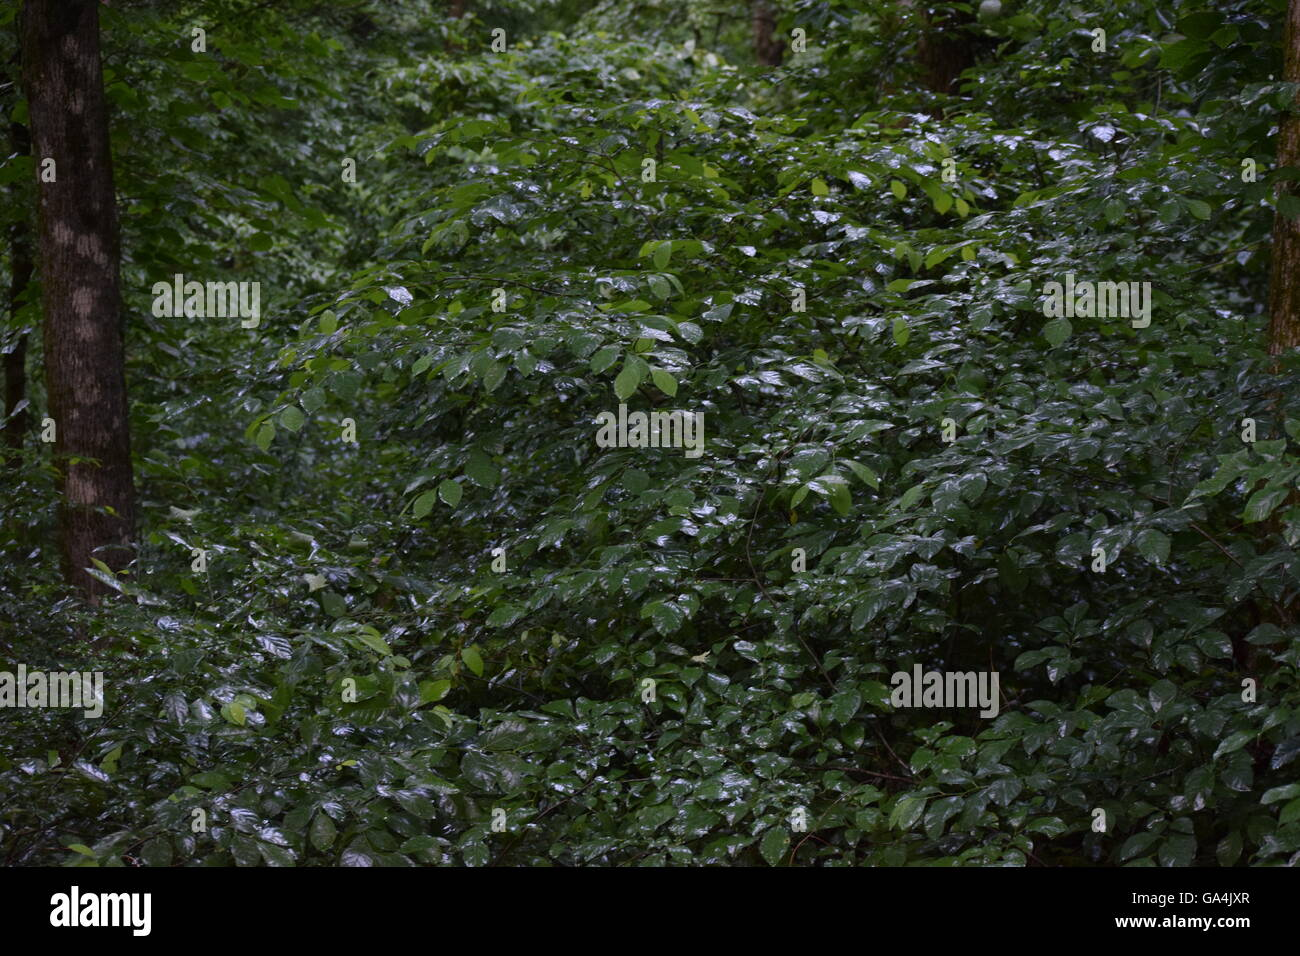 Damp leaves glisten in a forest after rain - Stock Image